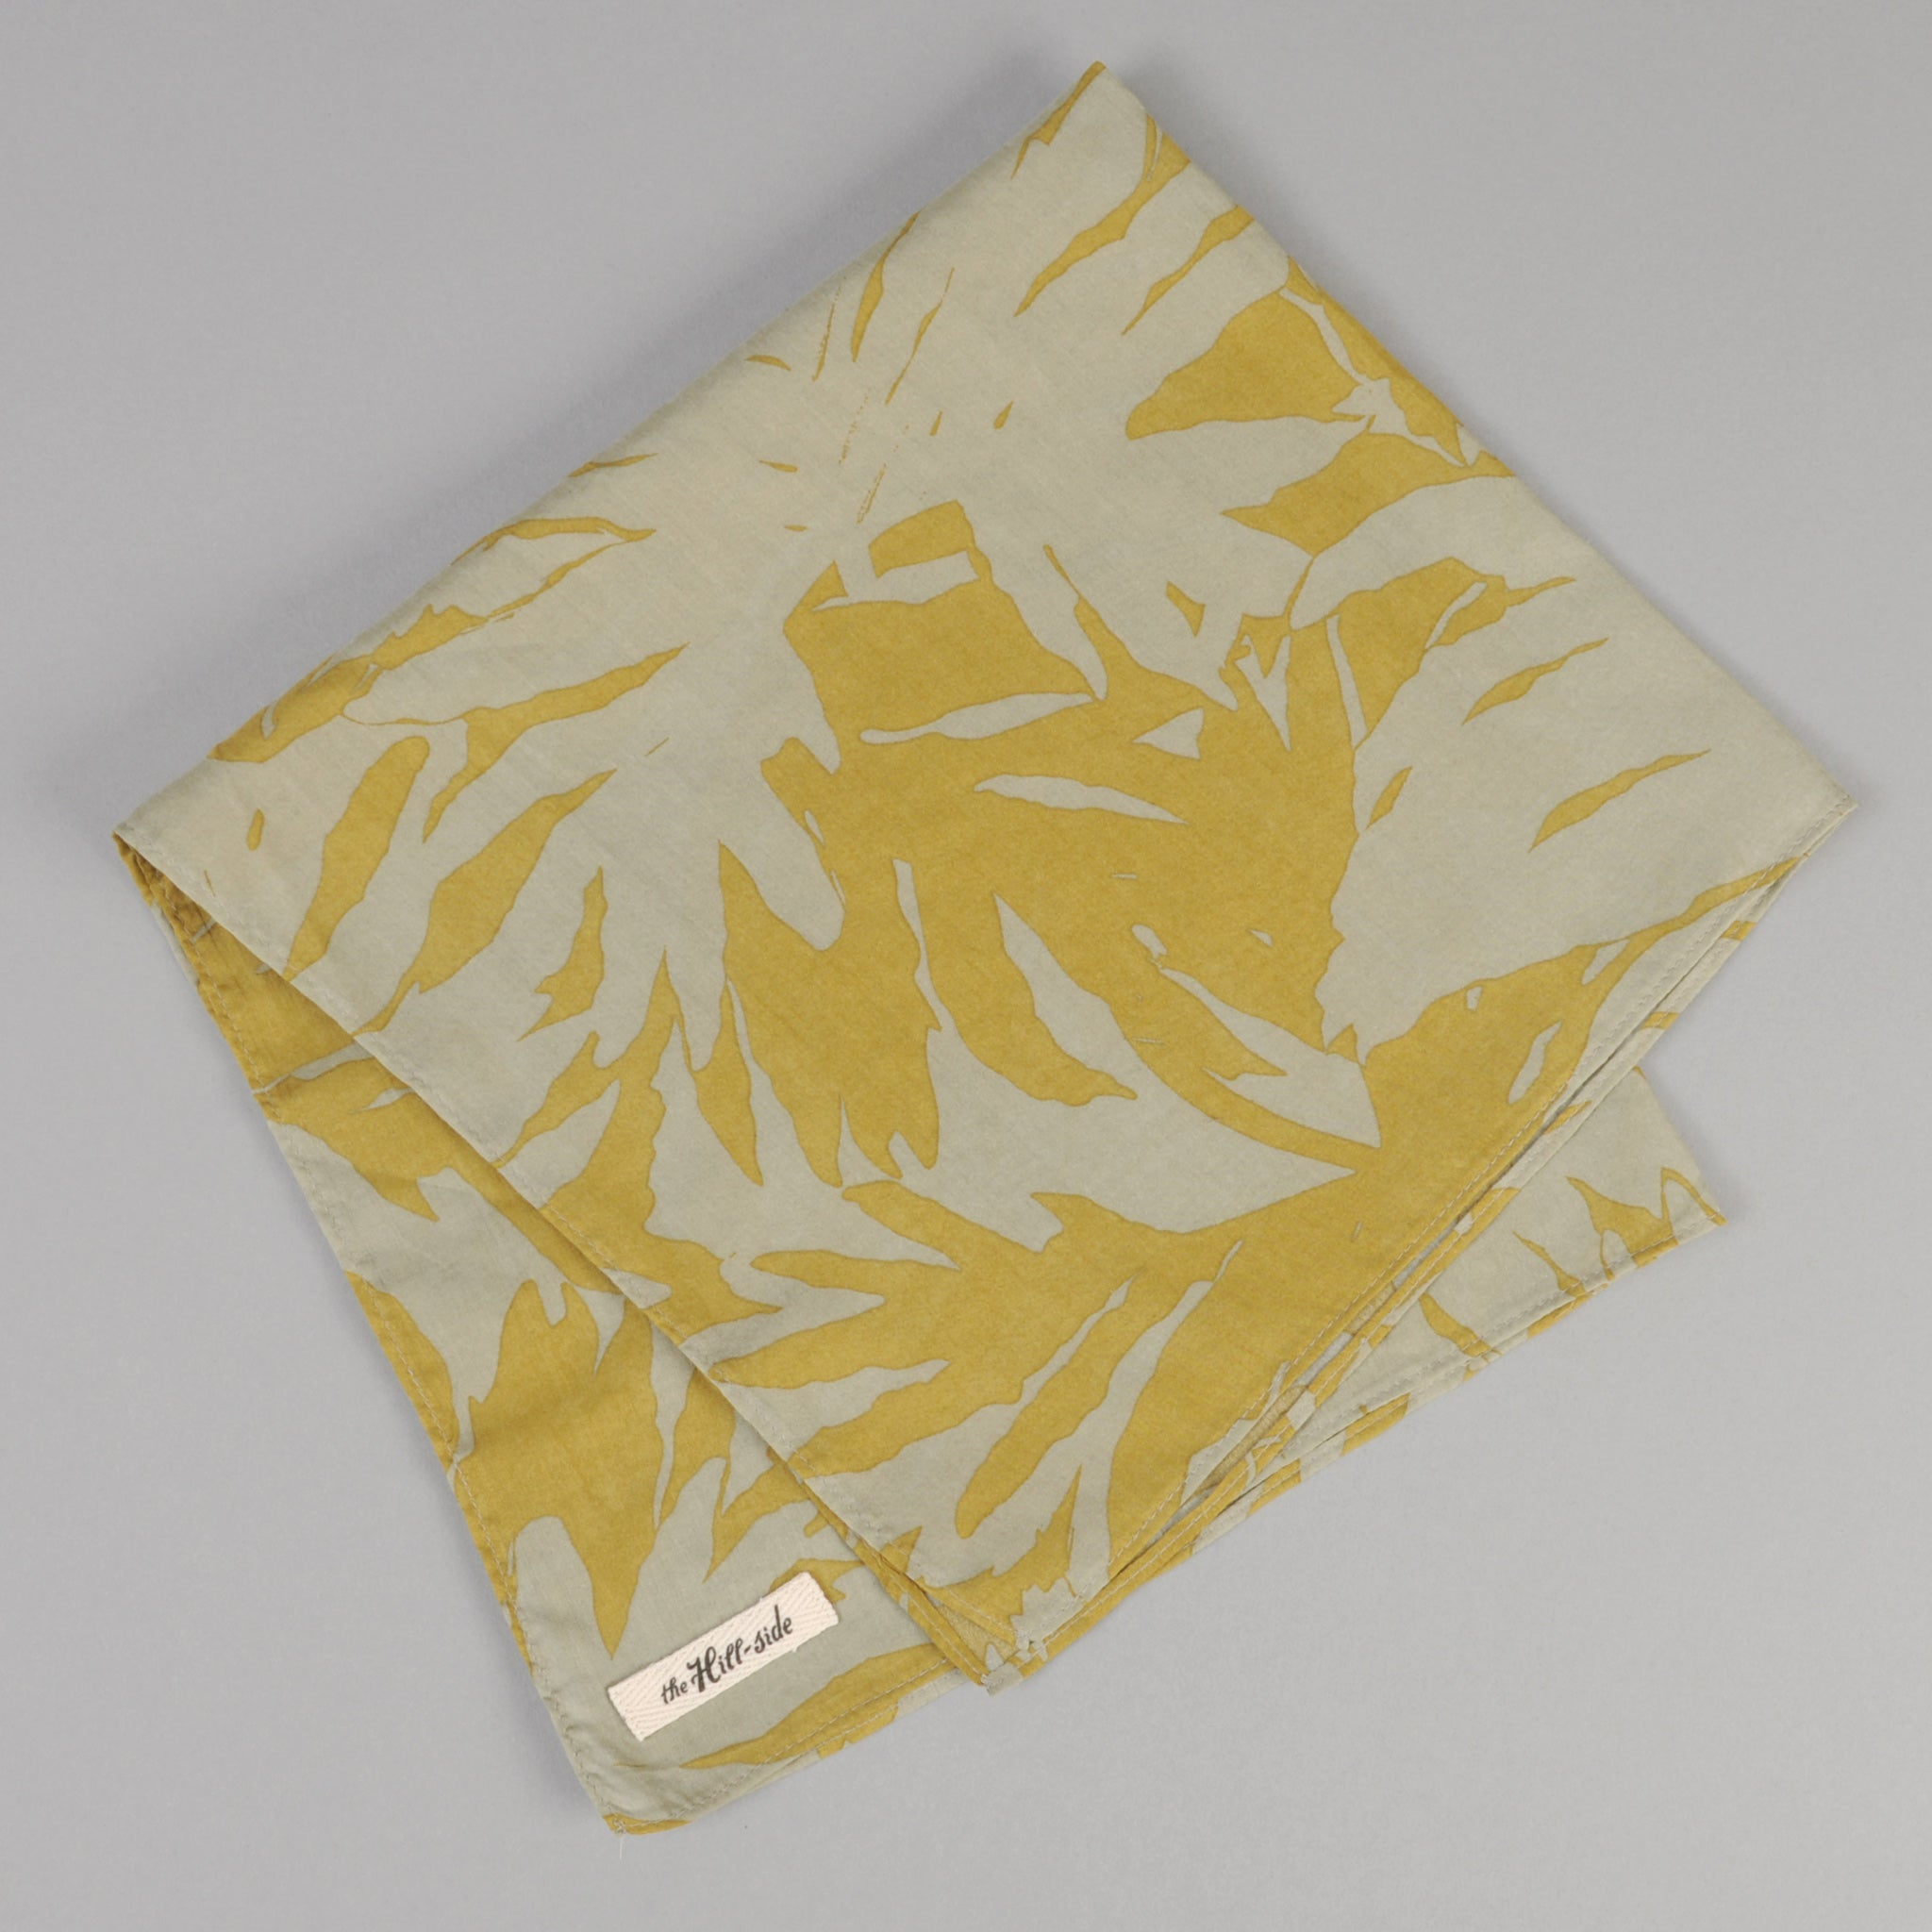 The Hill-Side - Ultralight Palm Leaves Pocket Square, Mustard - PS1-442 - image 1